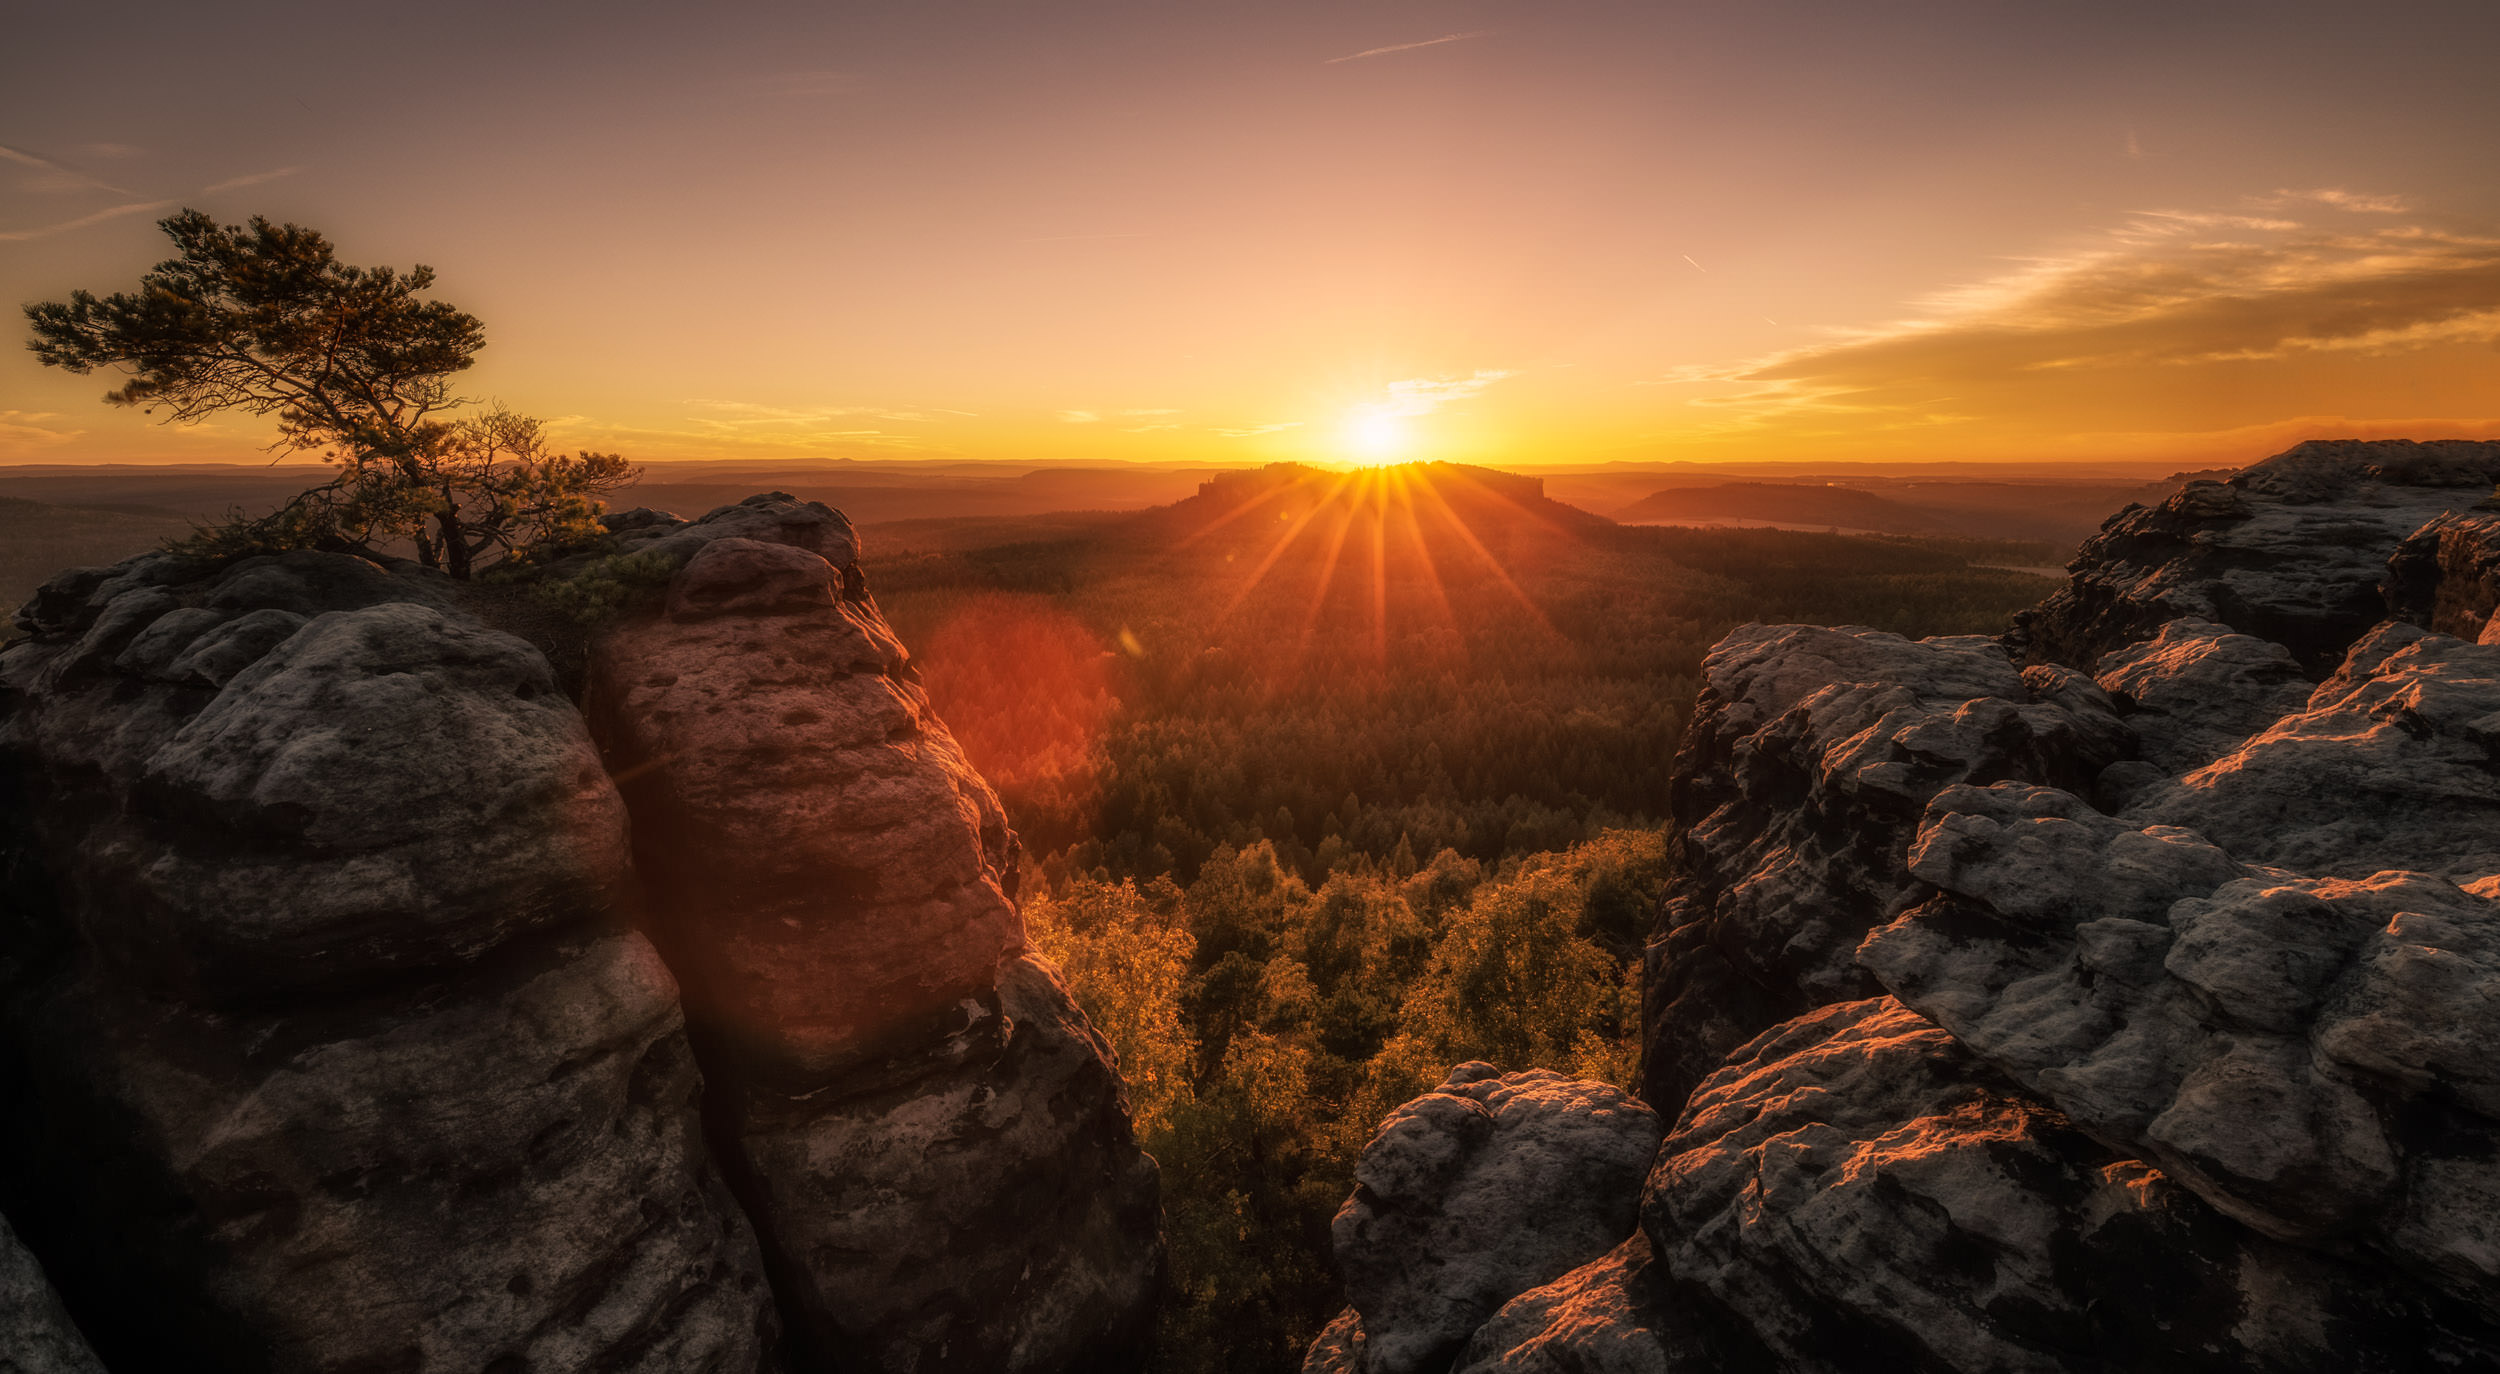 Sunset over the mountains of Saxon Switzerland